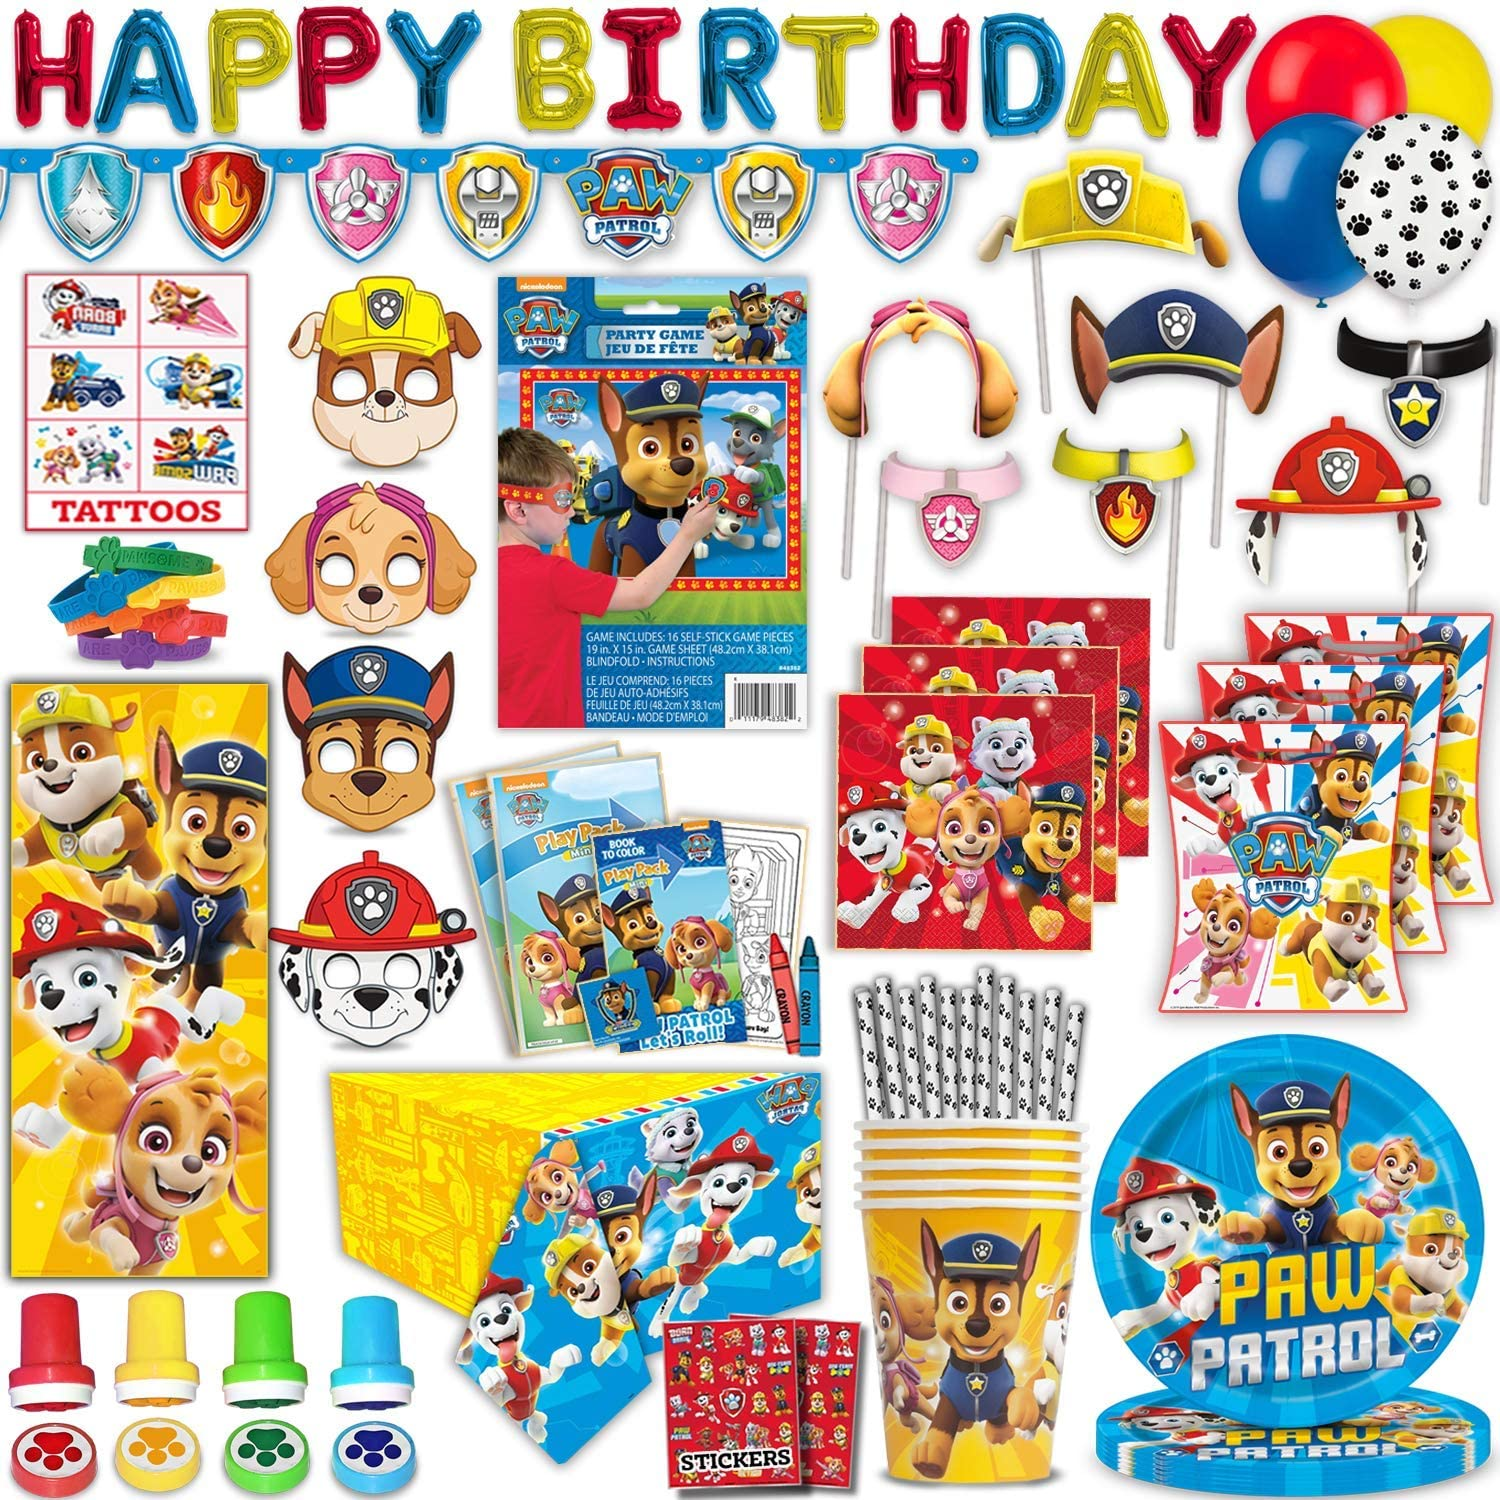 Paw Patrol Birthday Party Supplies, Favors & Decoration, Serves 16 - Plates, Napkins, Cups, Straws, Masks, Banner, Balloons, Tablecover, Photo Props, Game, Play-Packs, Bracelets, Door Poster, Stamps, Tattoos, Stickers